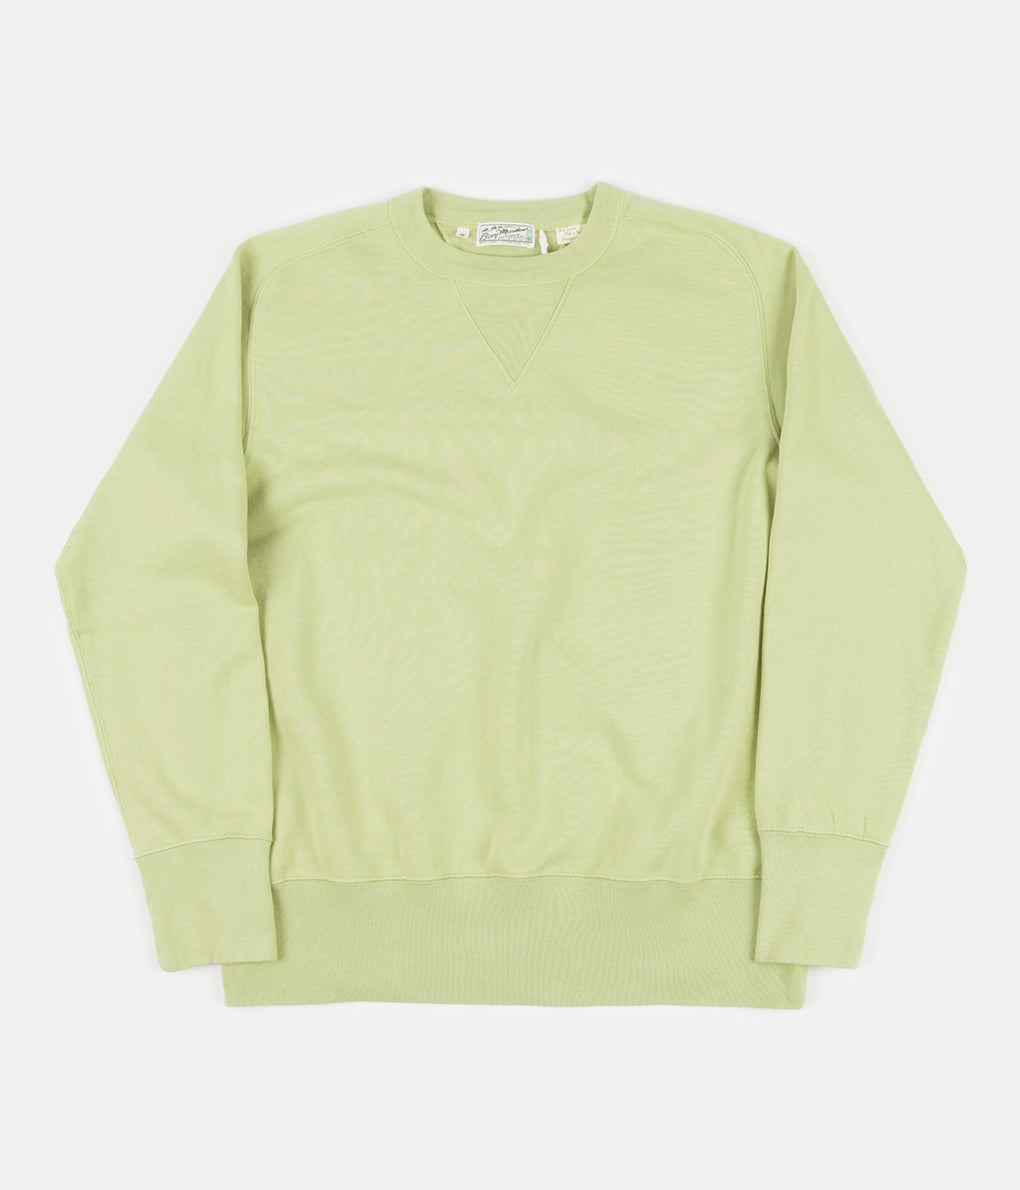 Levi's® Vintage Clothing Bay Meadows Sweatshirt - Apple Green